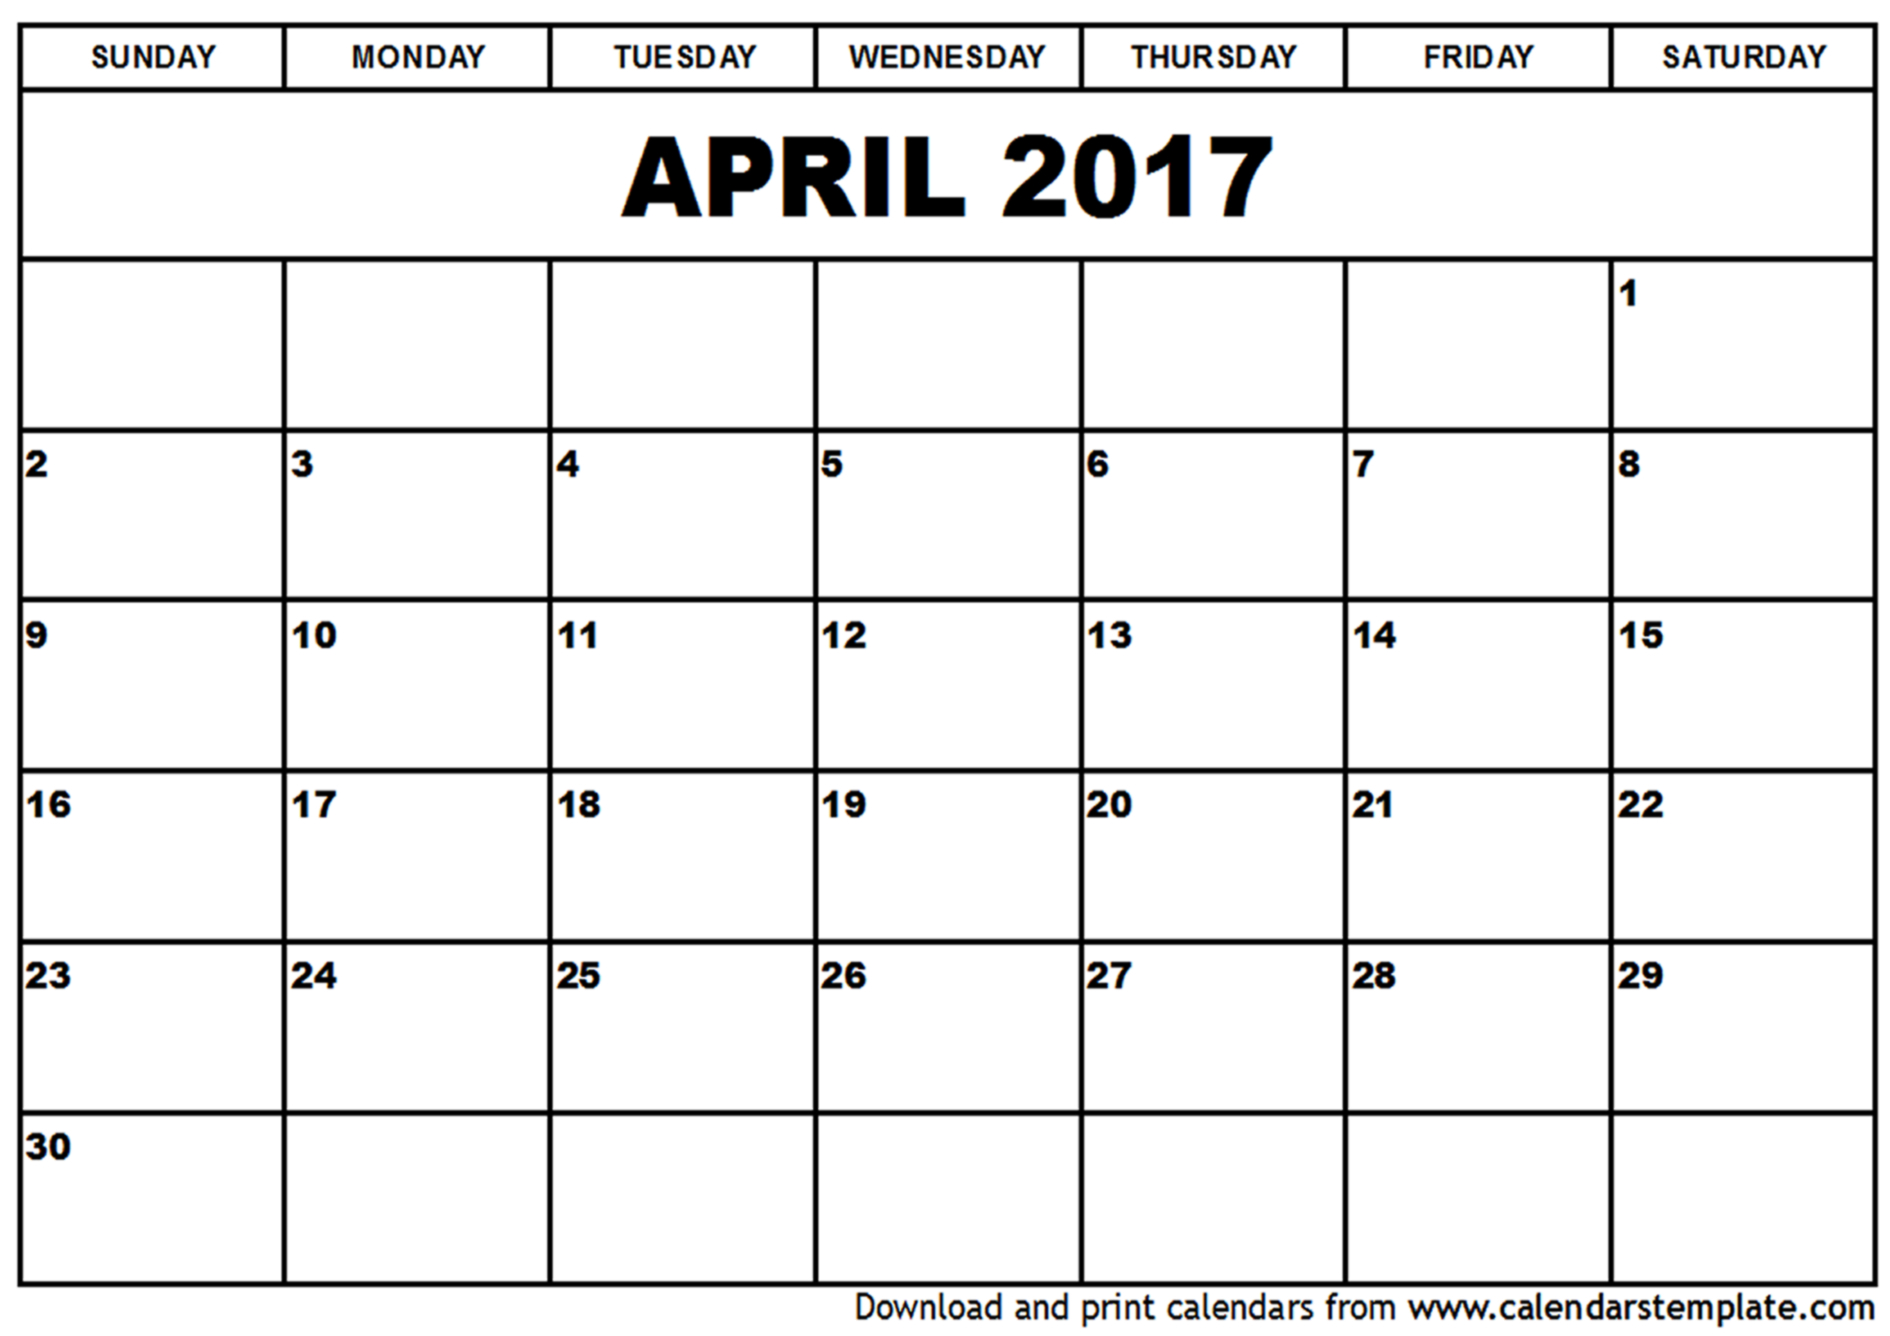 Free April 2017 Calendar (With US Holidays) – Printable Calendar